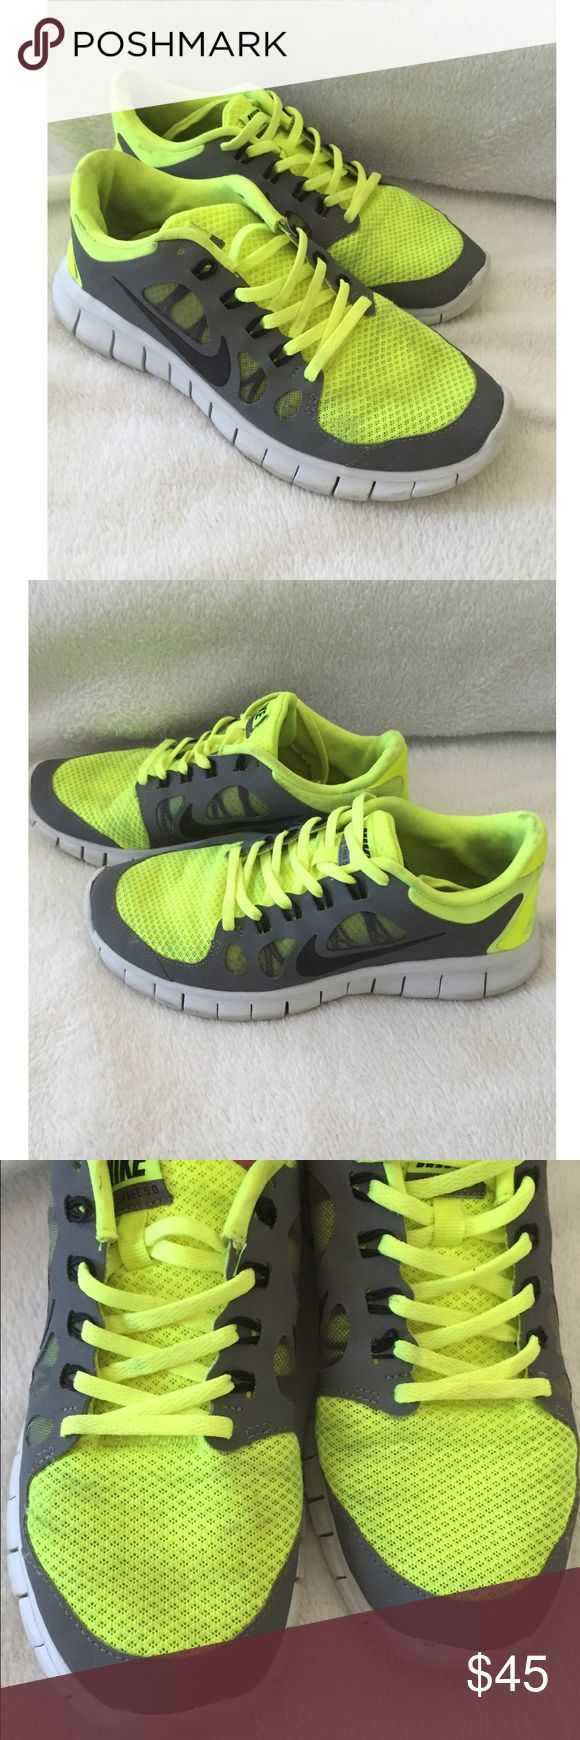 Lime green Nike free runners Lime green Nike free runners. Size 6.5Y size 7 adults. Usage shown in pictures. Please view pictures before purchasing. No returns Nike Shoes Sneakers